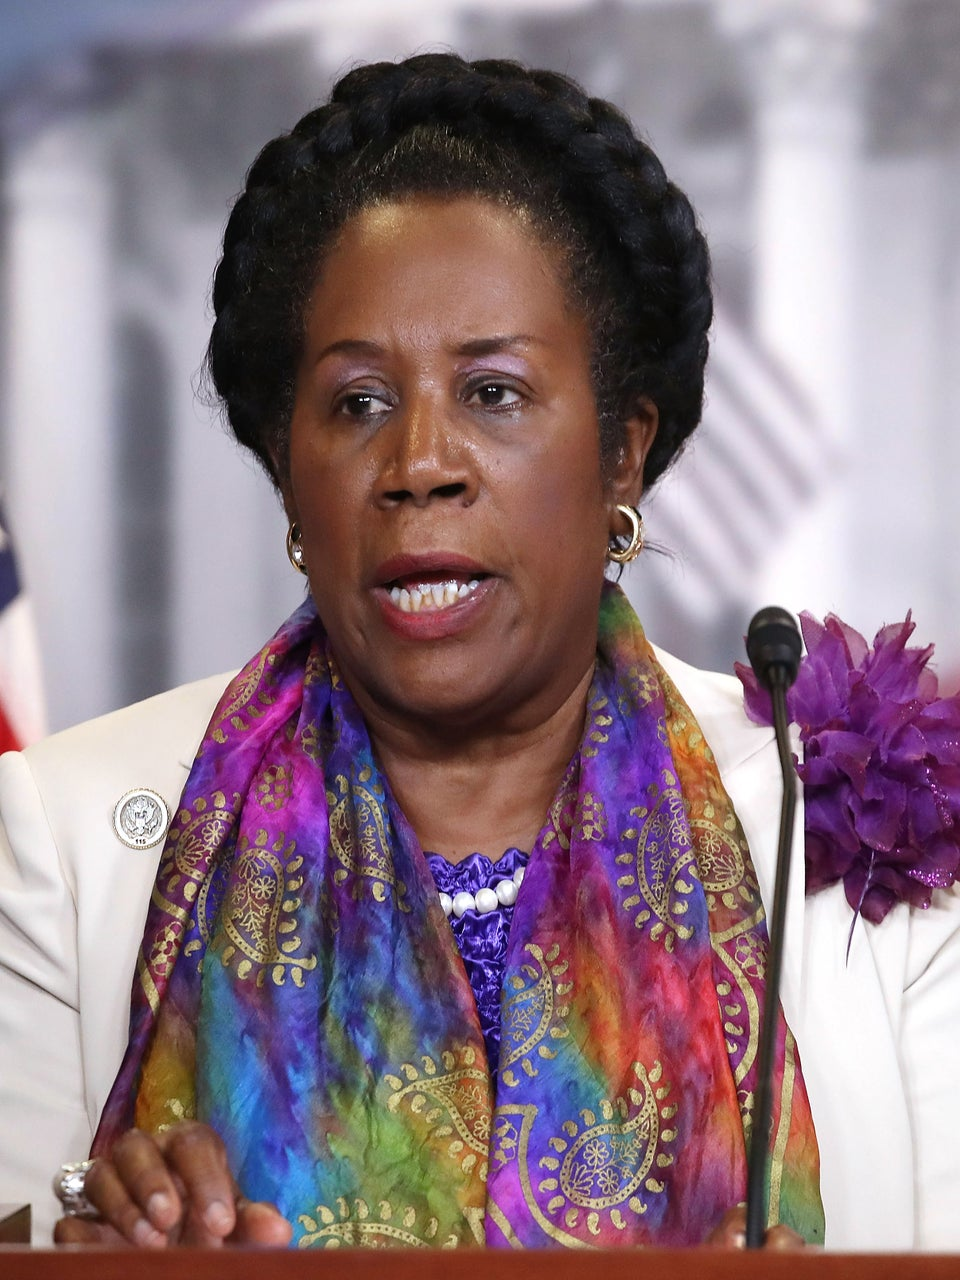 Rep. Sheila Jackson Denies Preferential Treatment From Airline